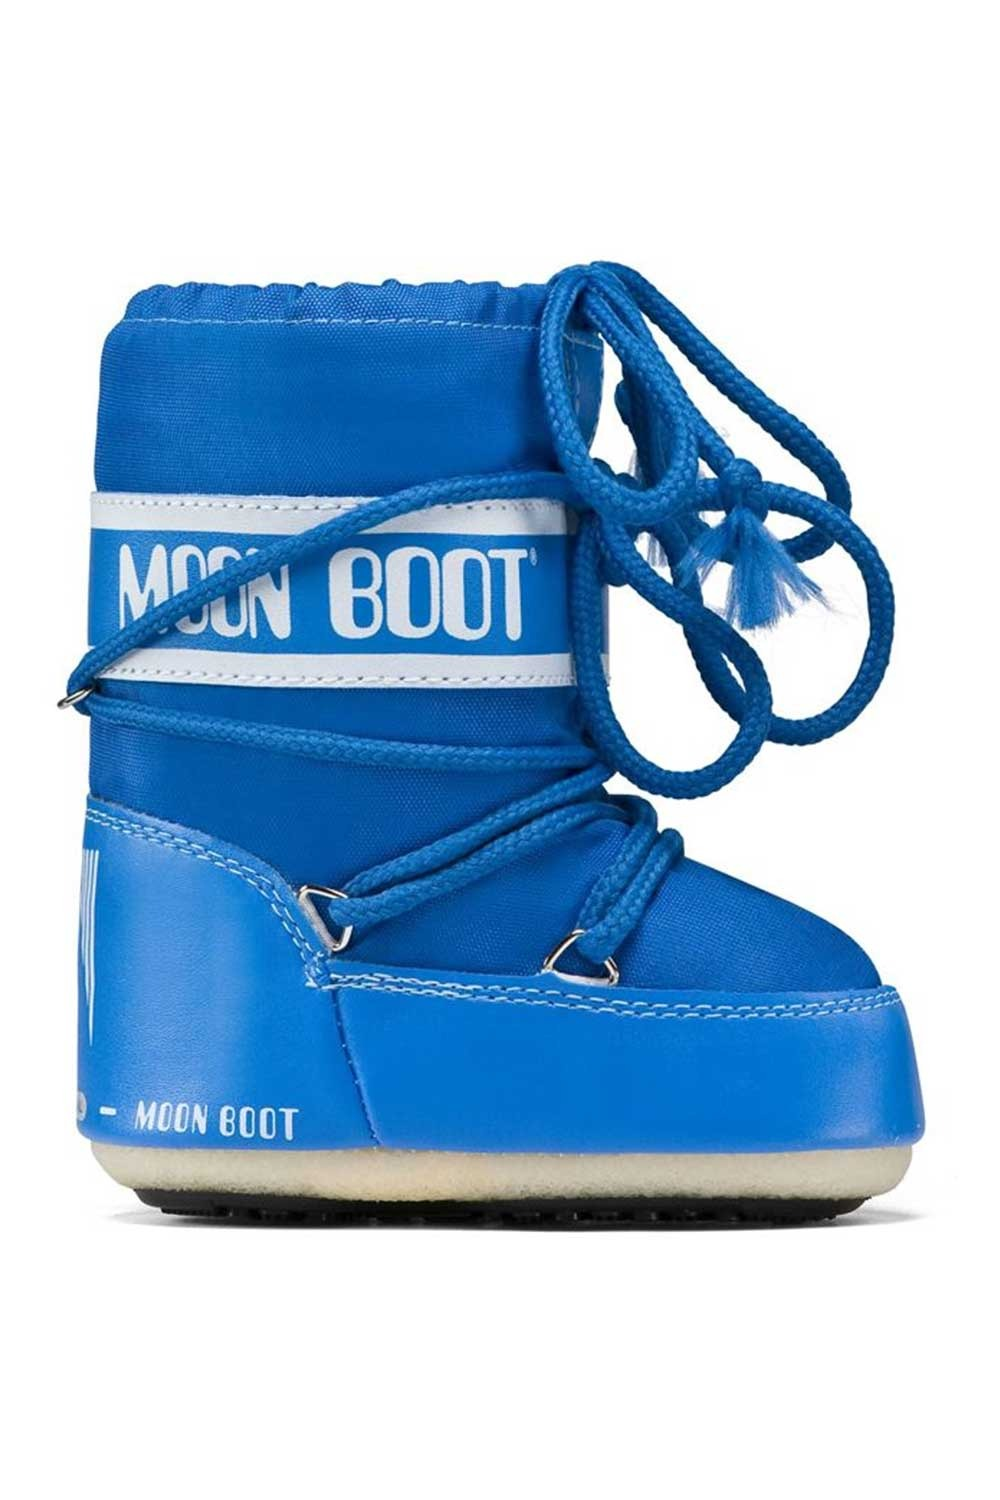 문부츠 키즈 방한부츠 미니 나일론_MOONBOOT YOUTH MOON BOOT MINI NYLON (120-145)_AZURE_VMQ878DC_AVMQ878DC